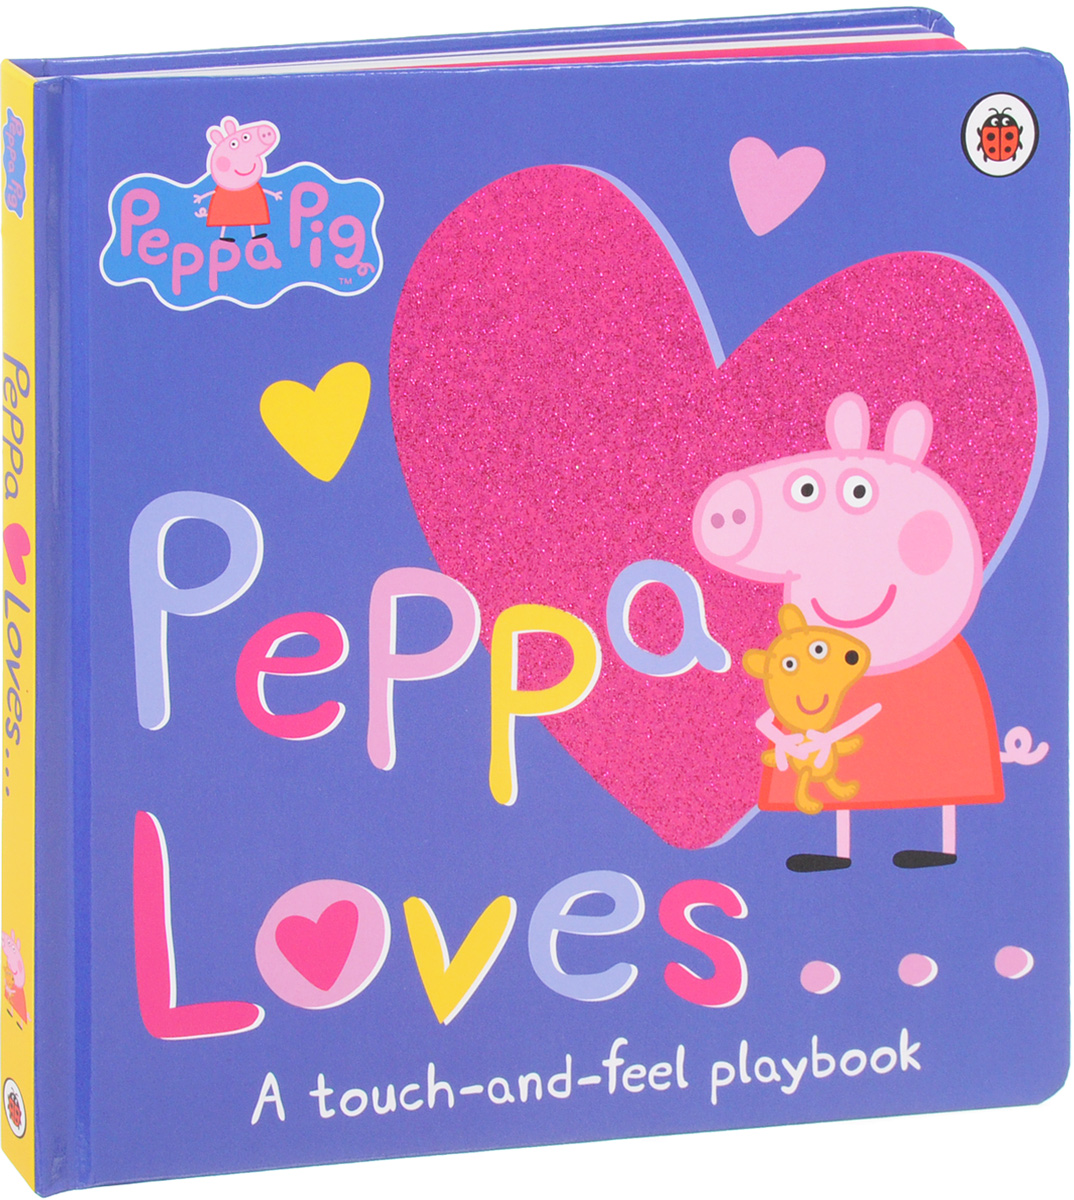 Peppa Loves: A Touch-and-Feel Playbook touch and feel dinosaur touch